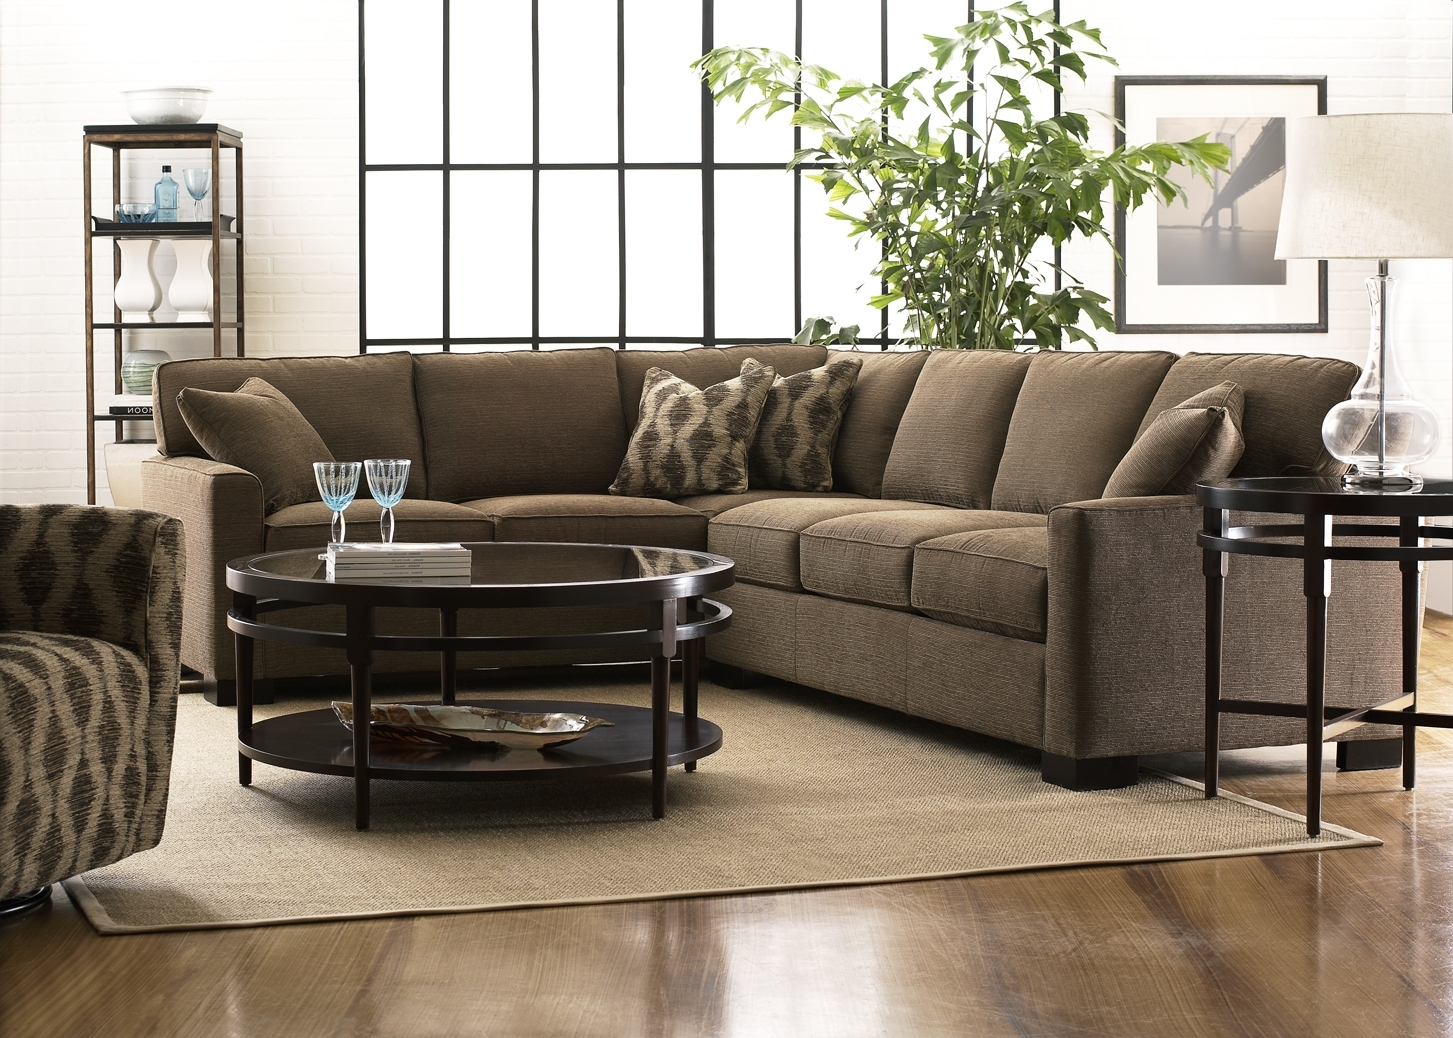 Small Room Design: Best Sofas For Small Living Rooms Small With 2019 Sectional Sofas With Recliners For Small Spaces (View 17 of 20)